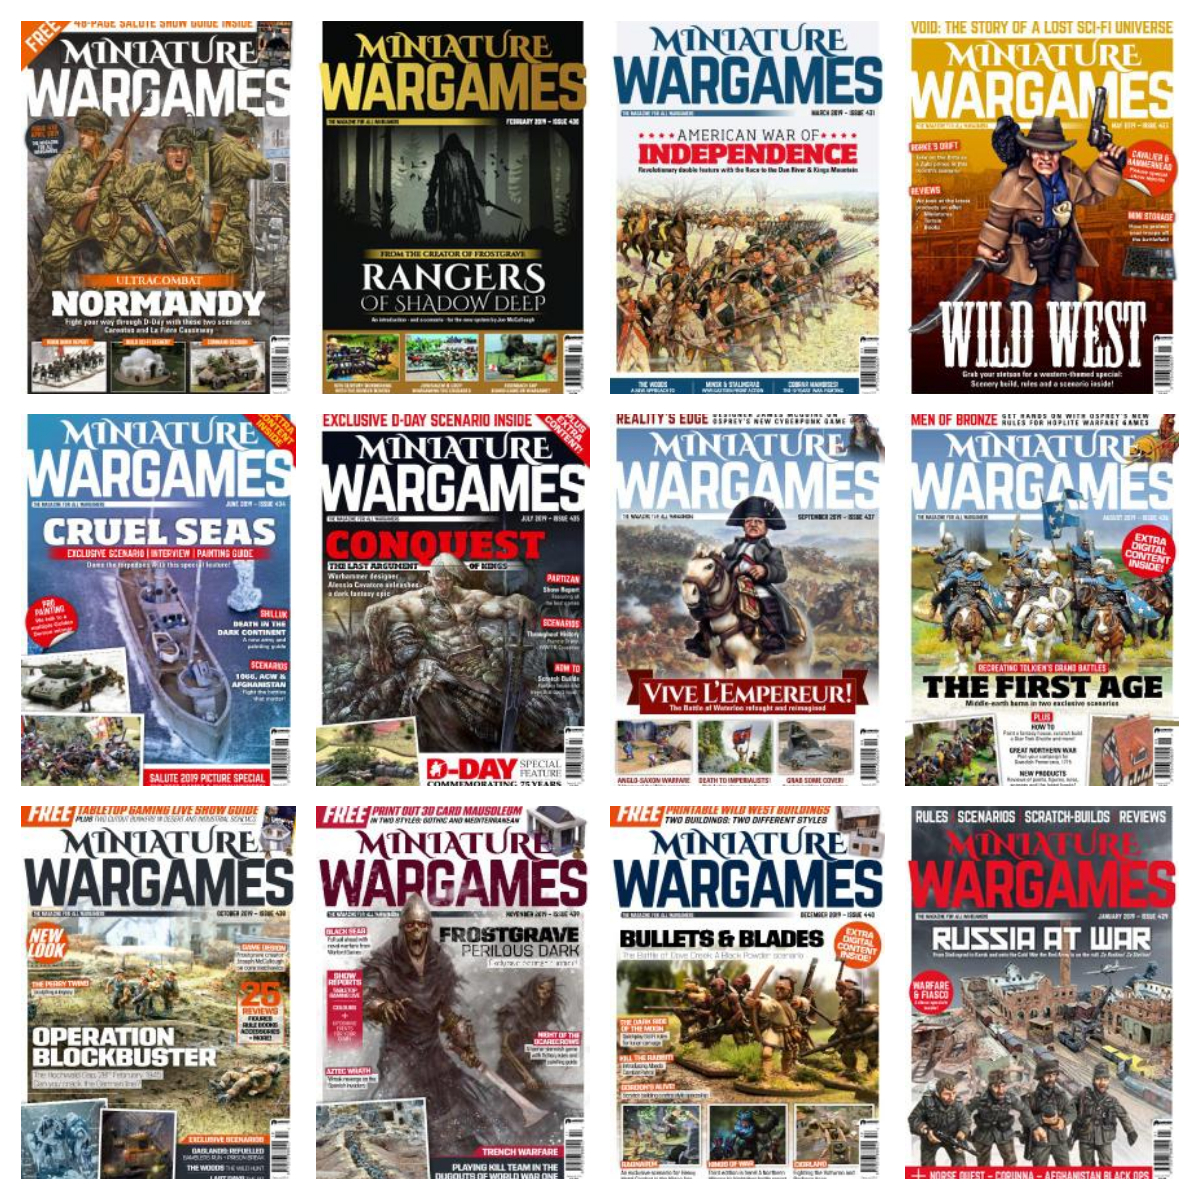 Miniature Wargames – 2019 Full Year Issues Collection